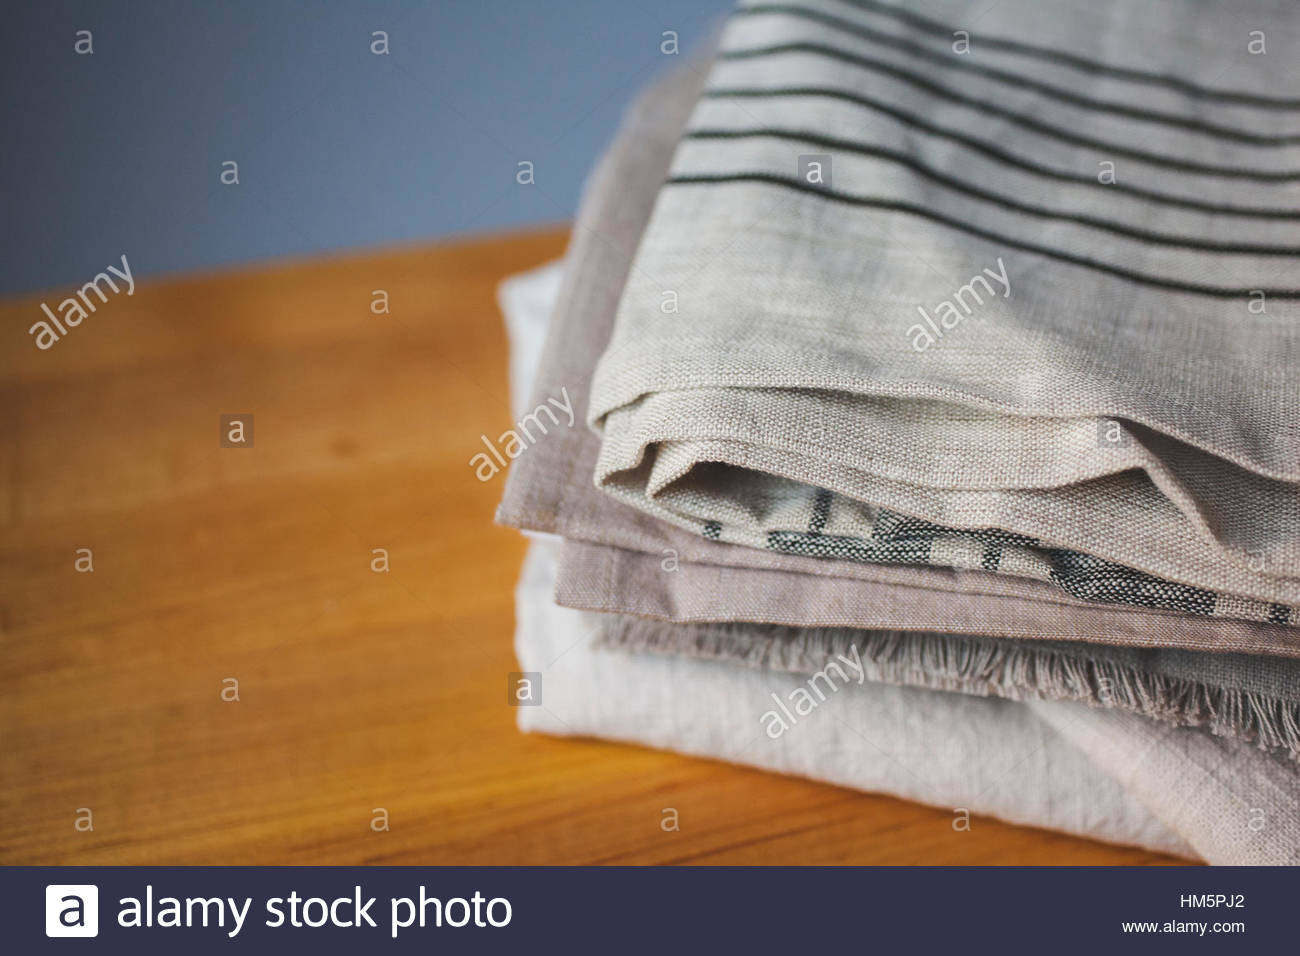 High angle view of tablecloths on wooden table - Stock Image